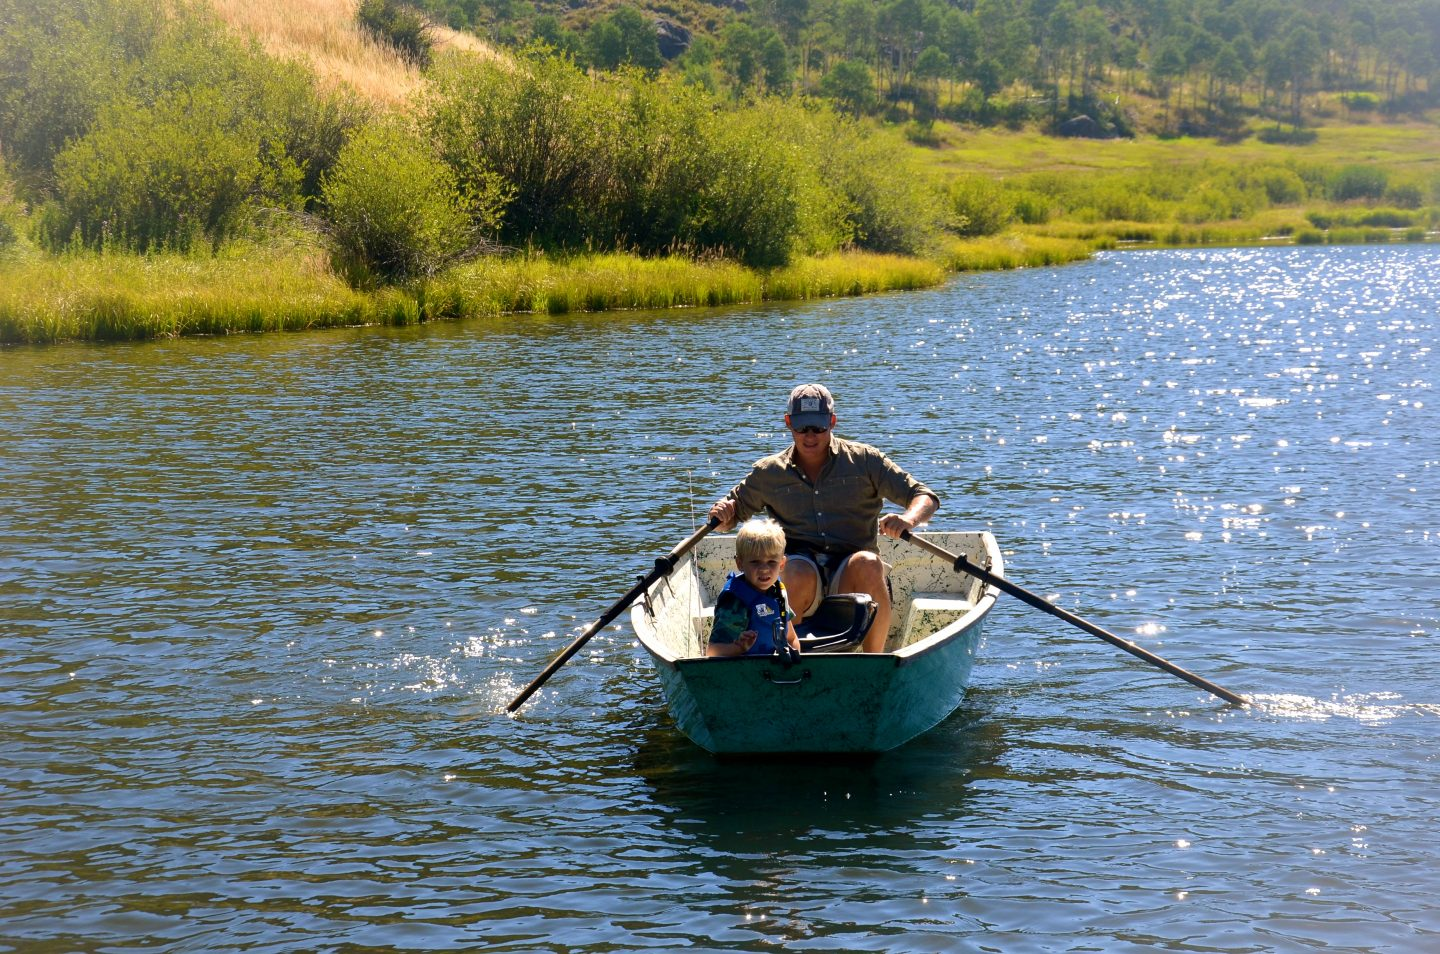 Boating and fishing in Steamboat Springs, CO.